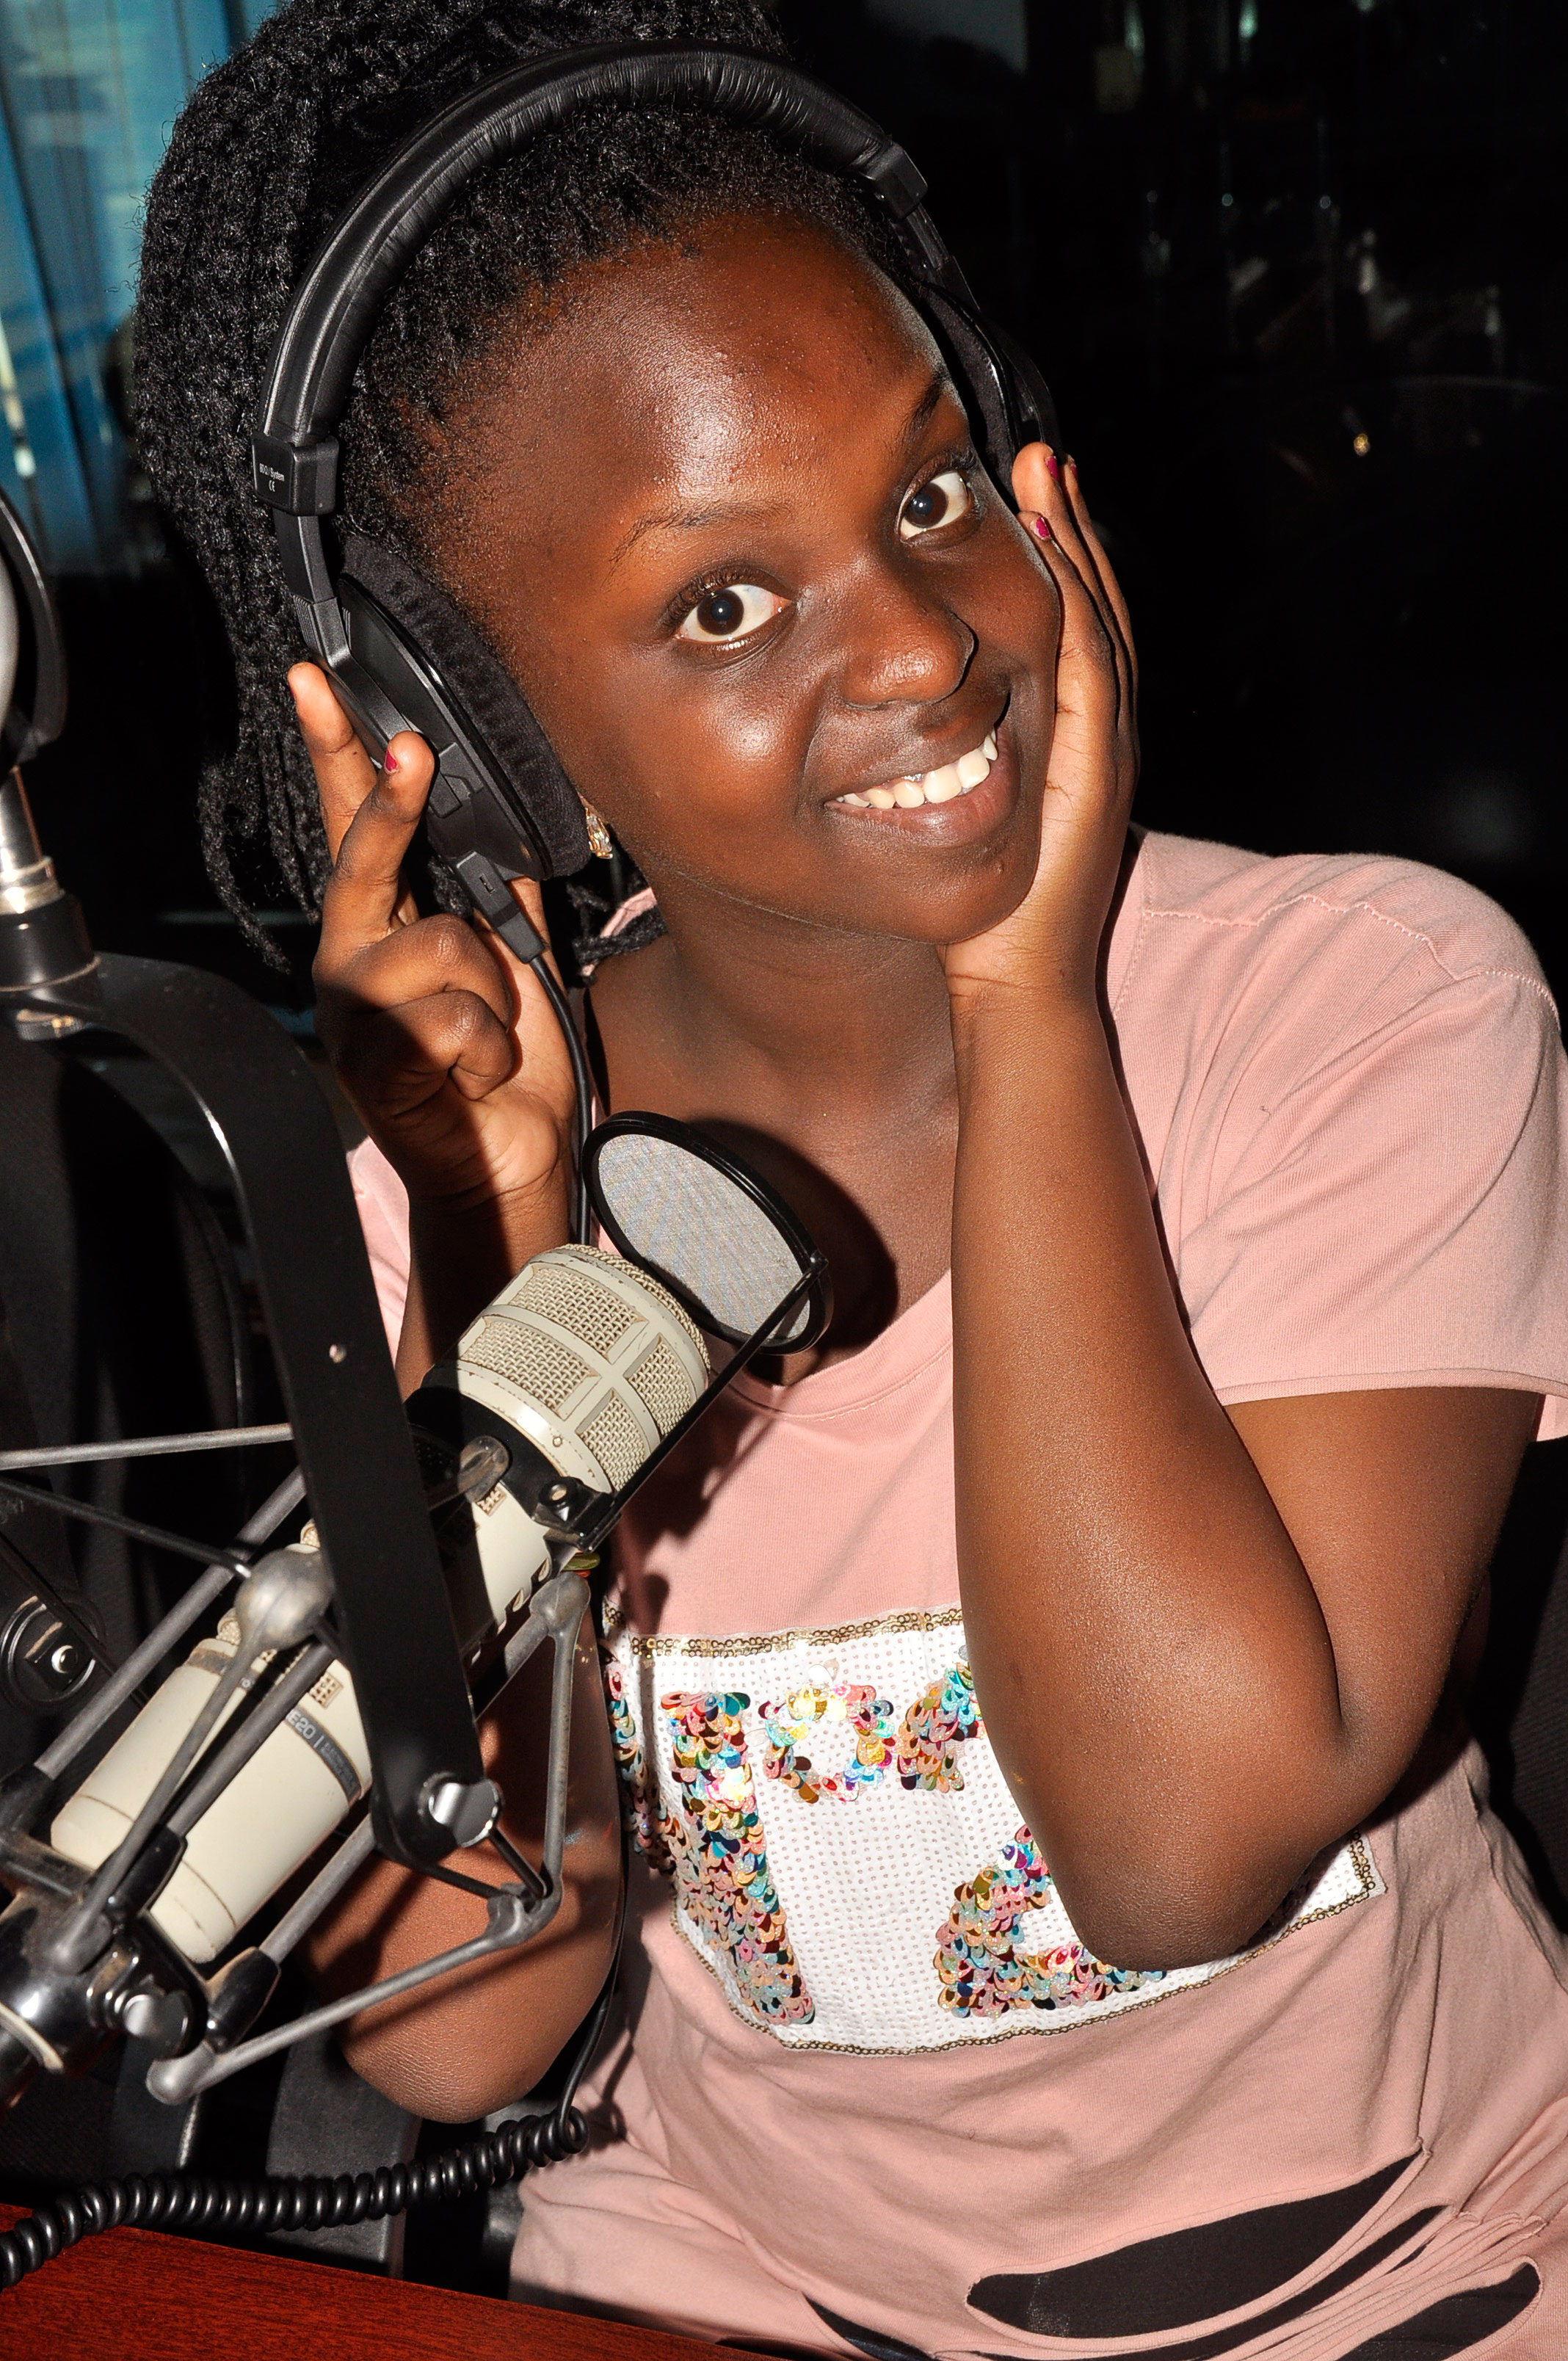 Baby Gloria during an interview at 93.3 KFM studios. Photo by Stephen Otage